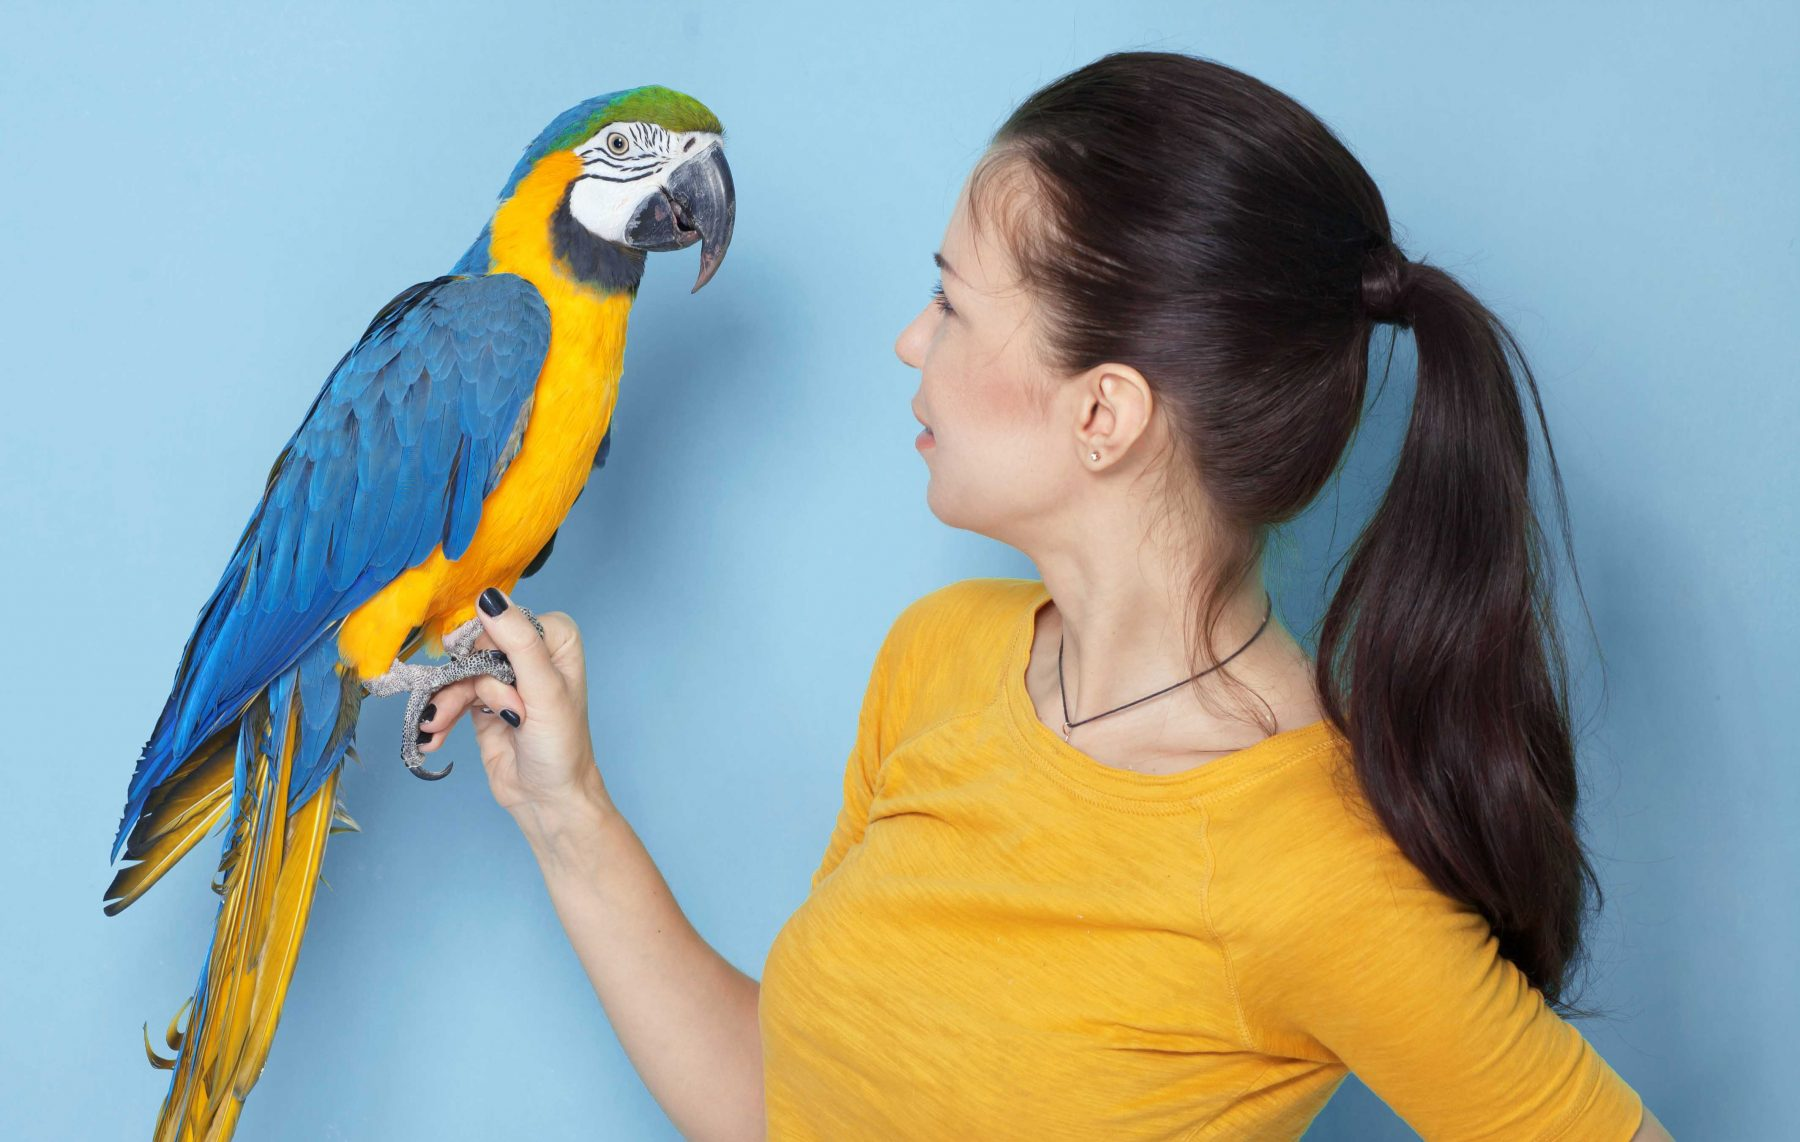 Girl with pet parrot